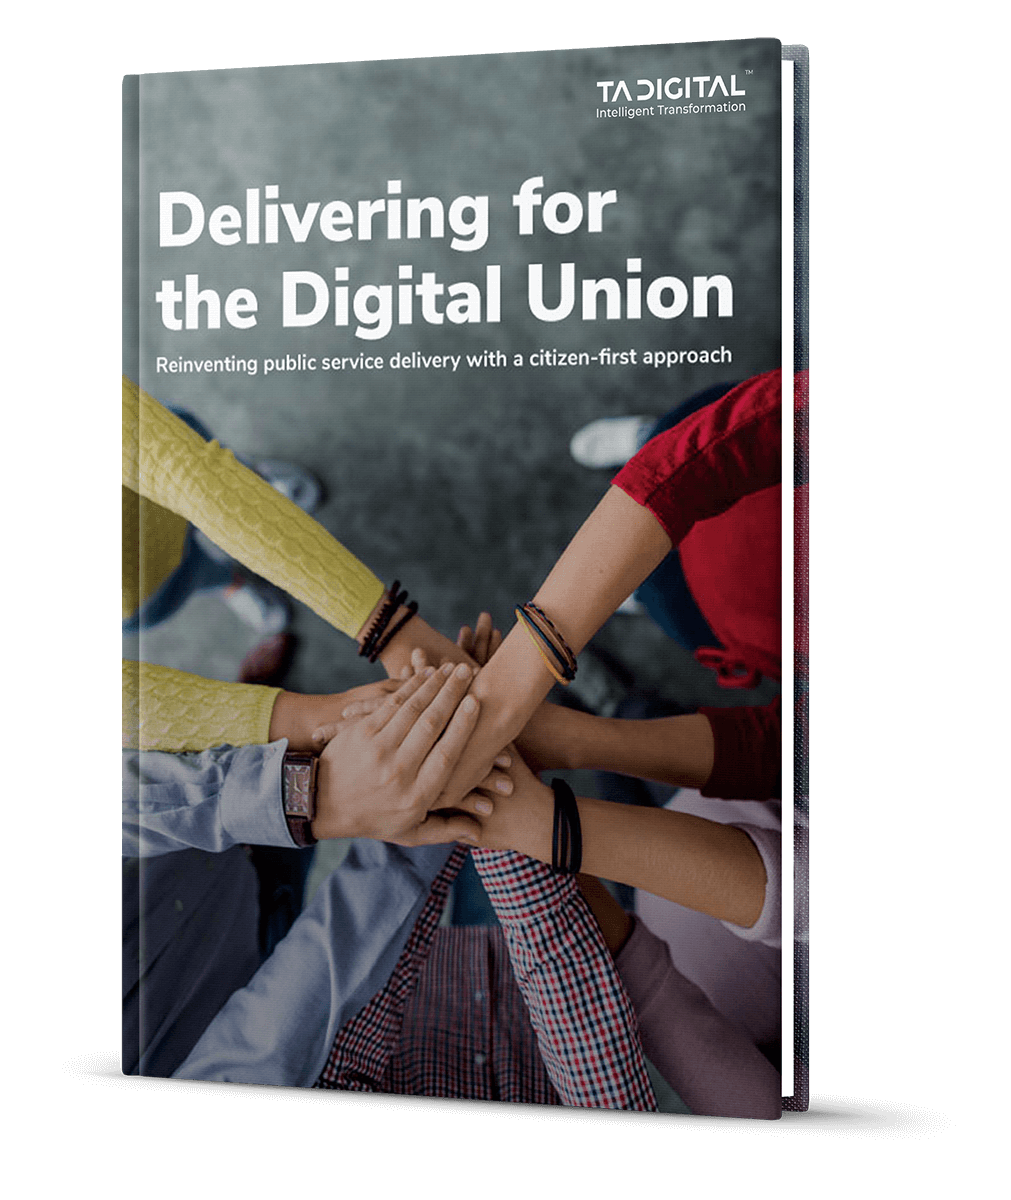 Delivering for Digital Union